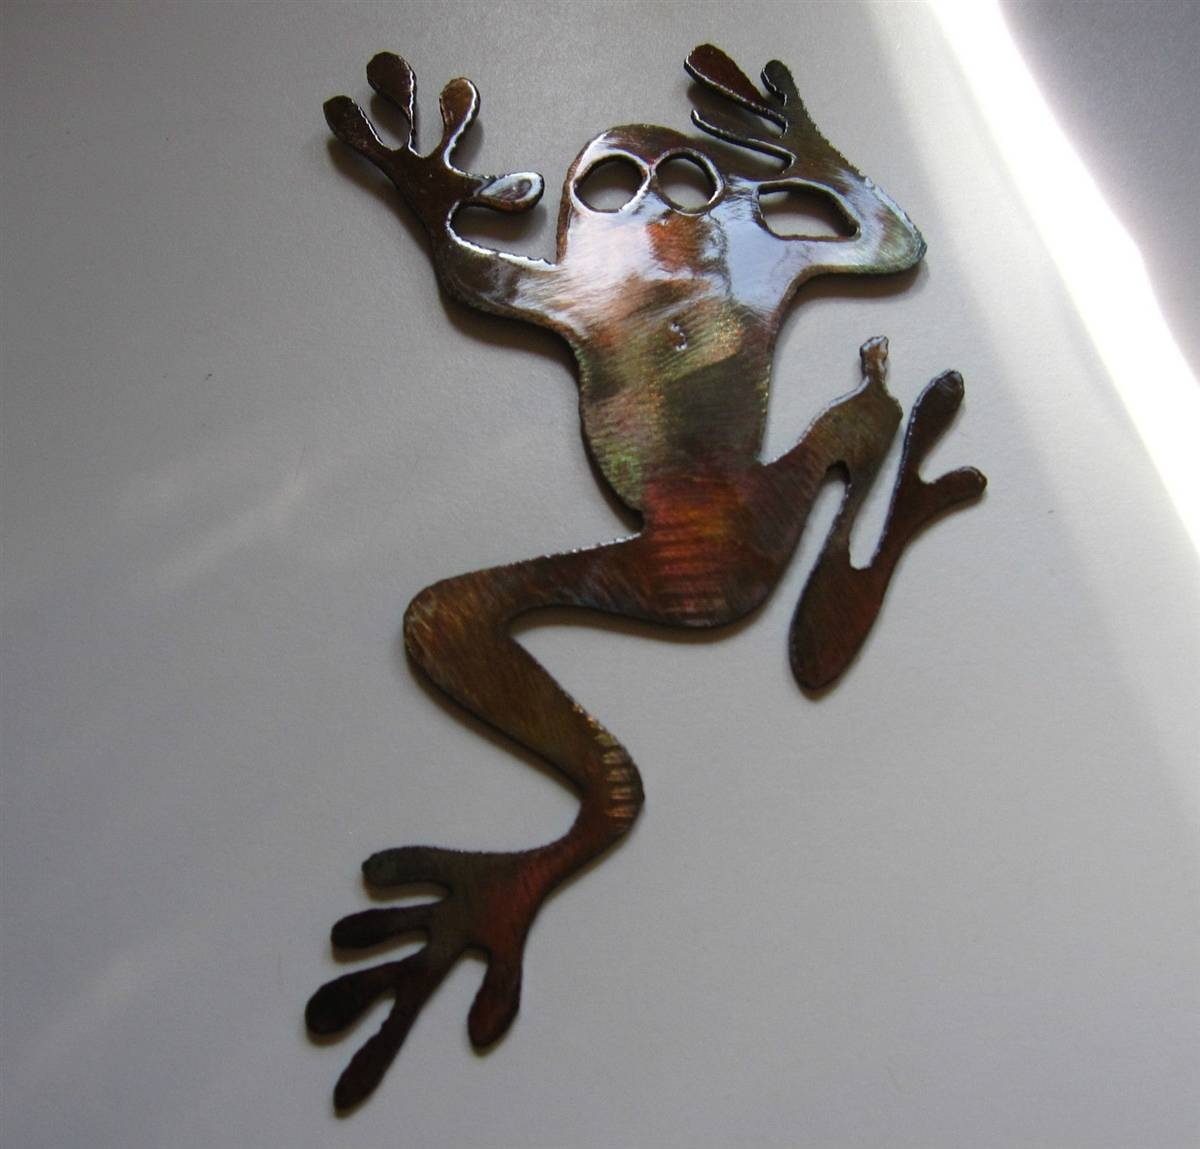 Tree Climbing Frog Metal Art With Latest Plasma Cut Metal Wall Art (Gallery 5 of 20)